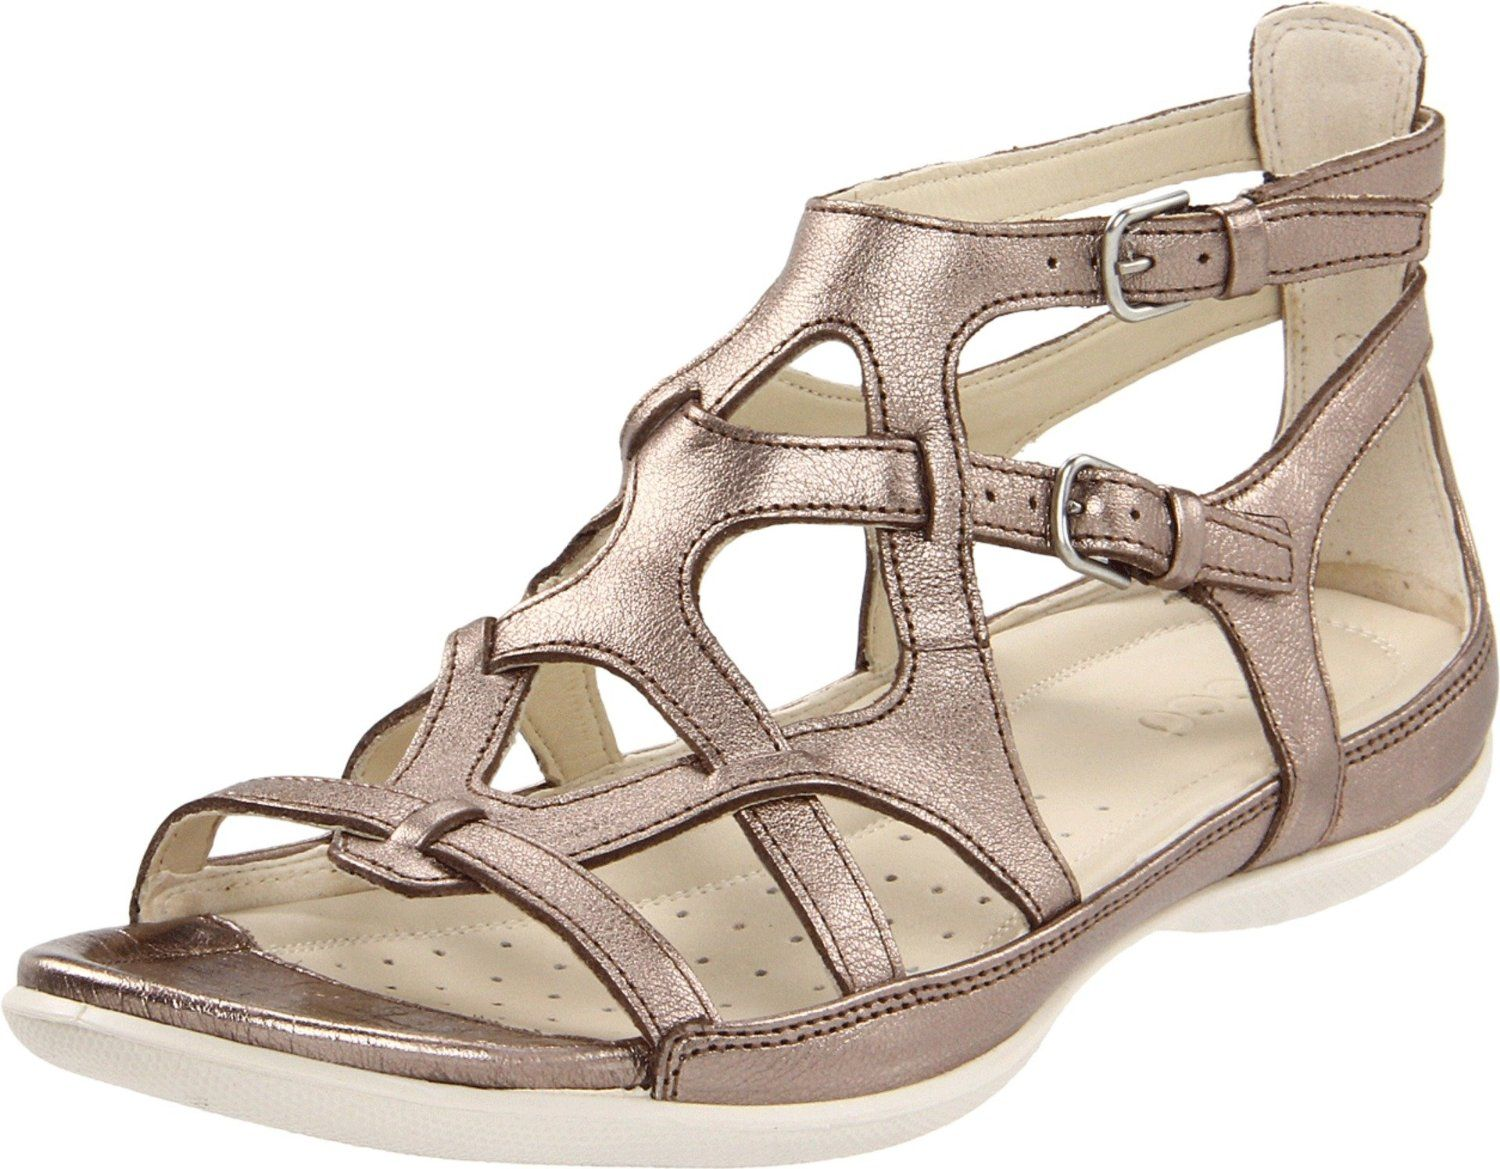 ecco sandals for travel